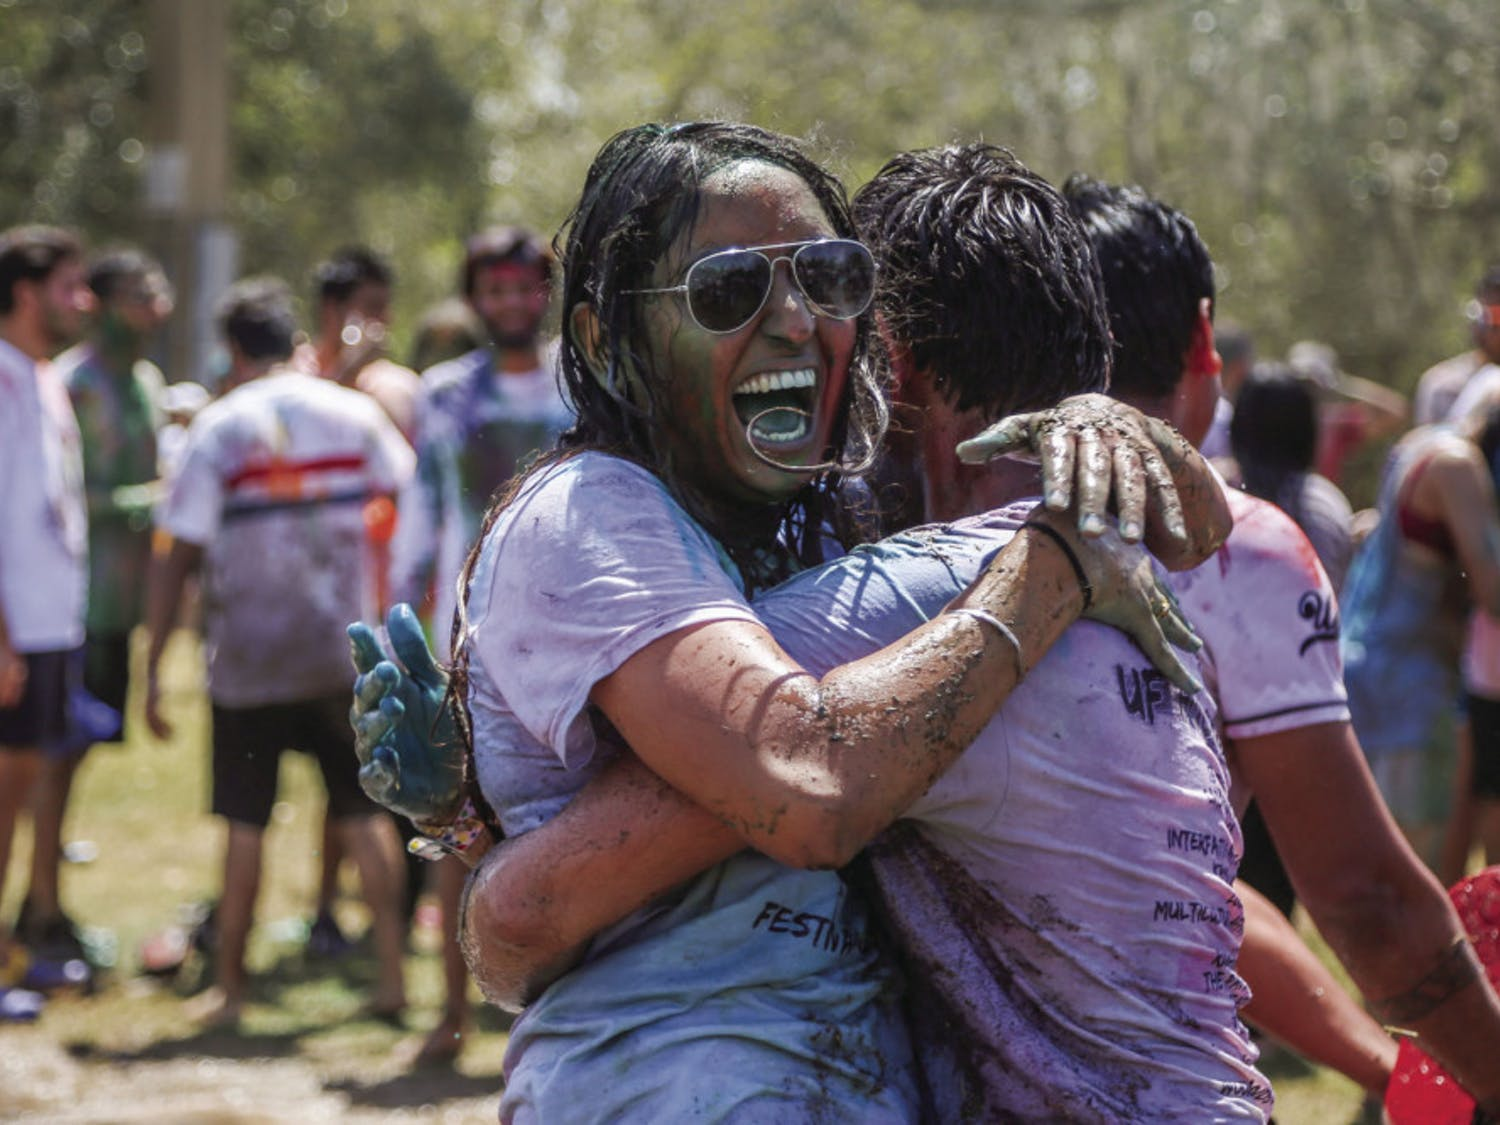 From left: Simran Giri, 19, a UF microbiology and cell science freshman who is originally from India, hugs her friend during the UF Holi Festival of Colors on Sunday afternoon. After the kickoff, many people went under water thrown by a fire truck. A mud fight followed.